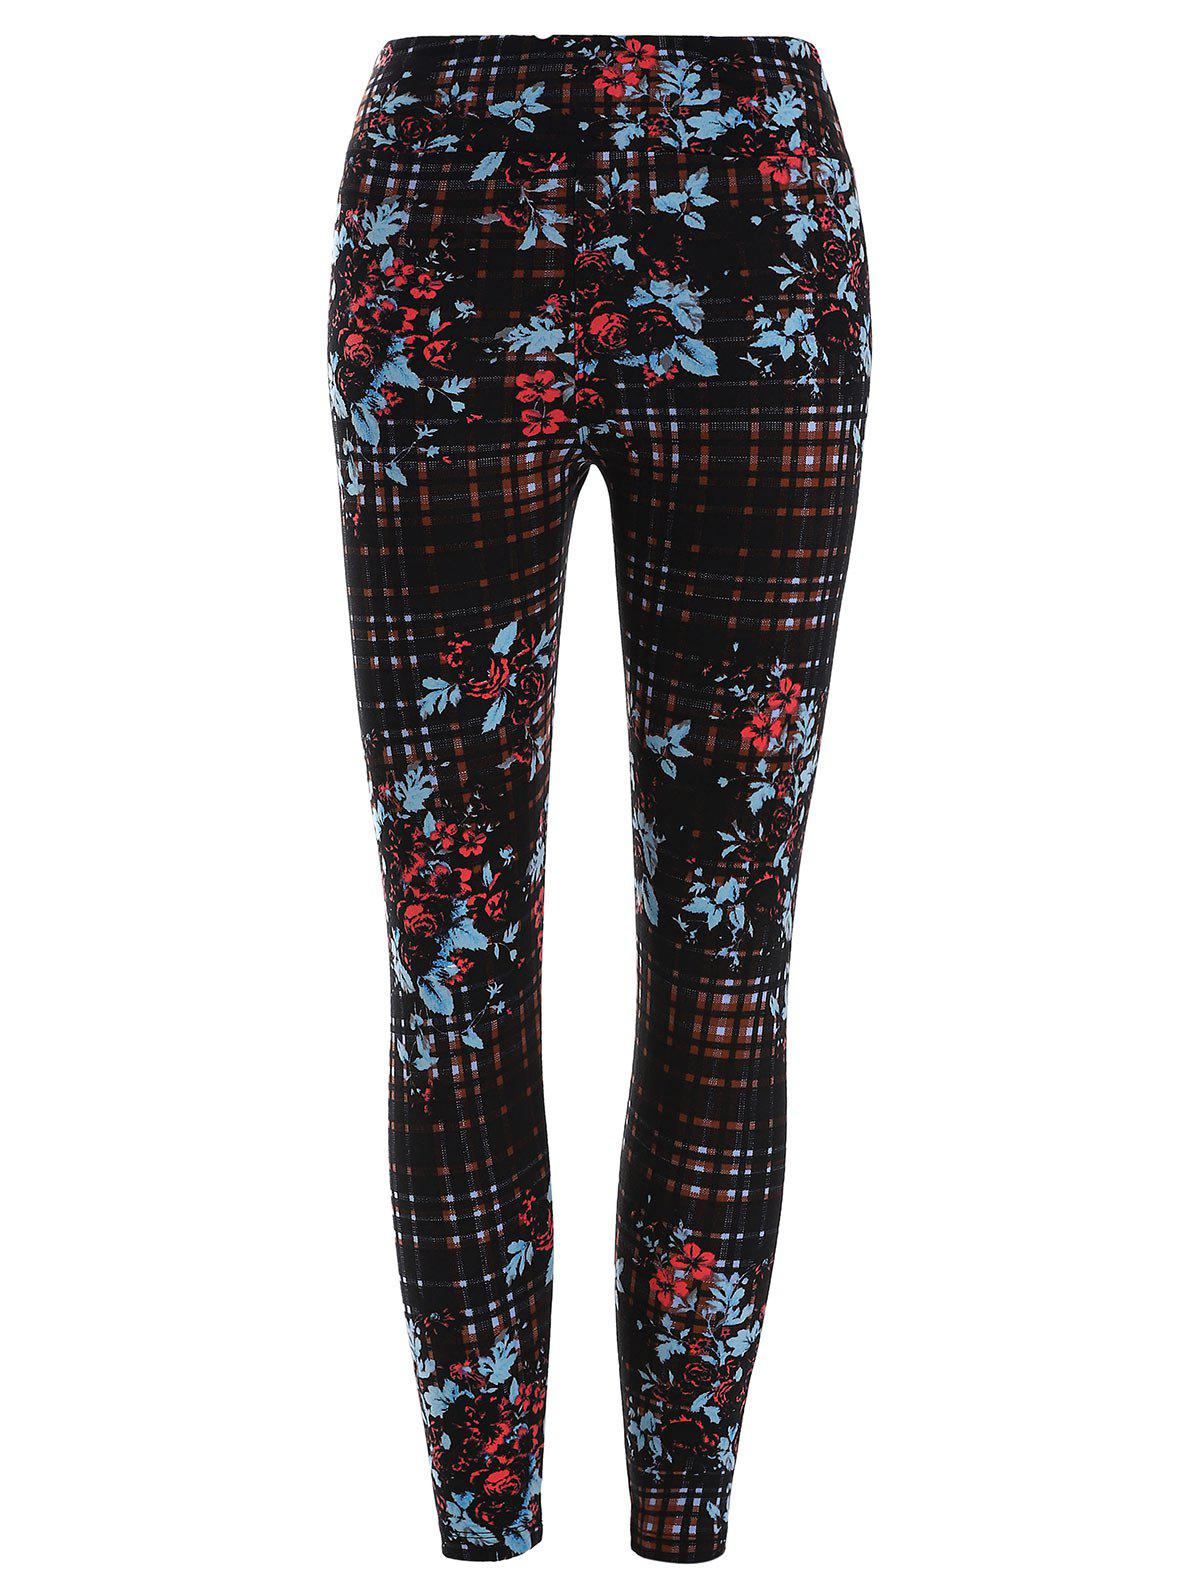 Discount Floral and Plaid Print Stretchy Leggings